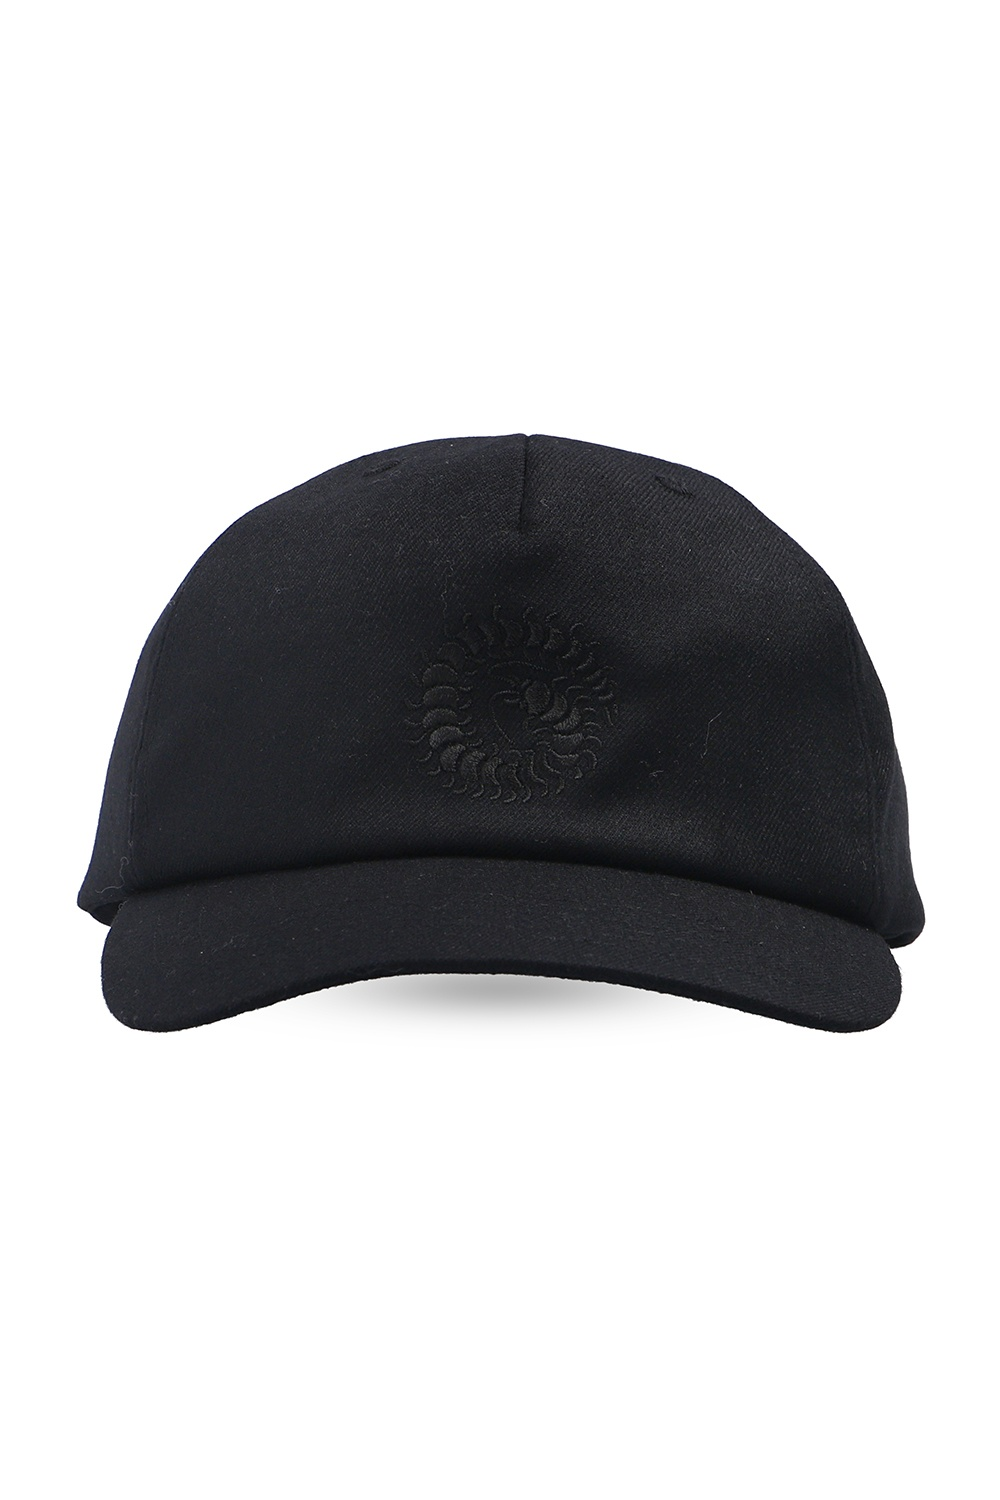 Undercover Embroidered baseball cap